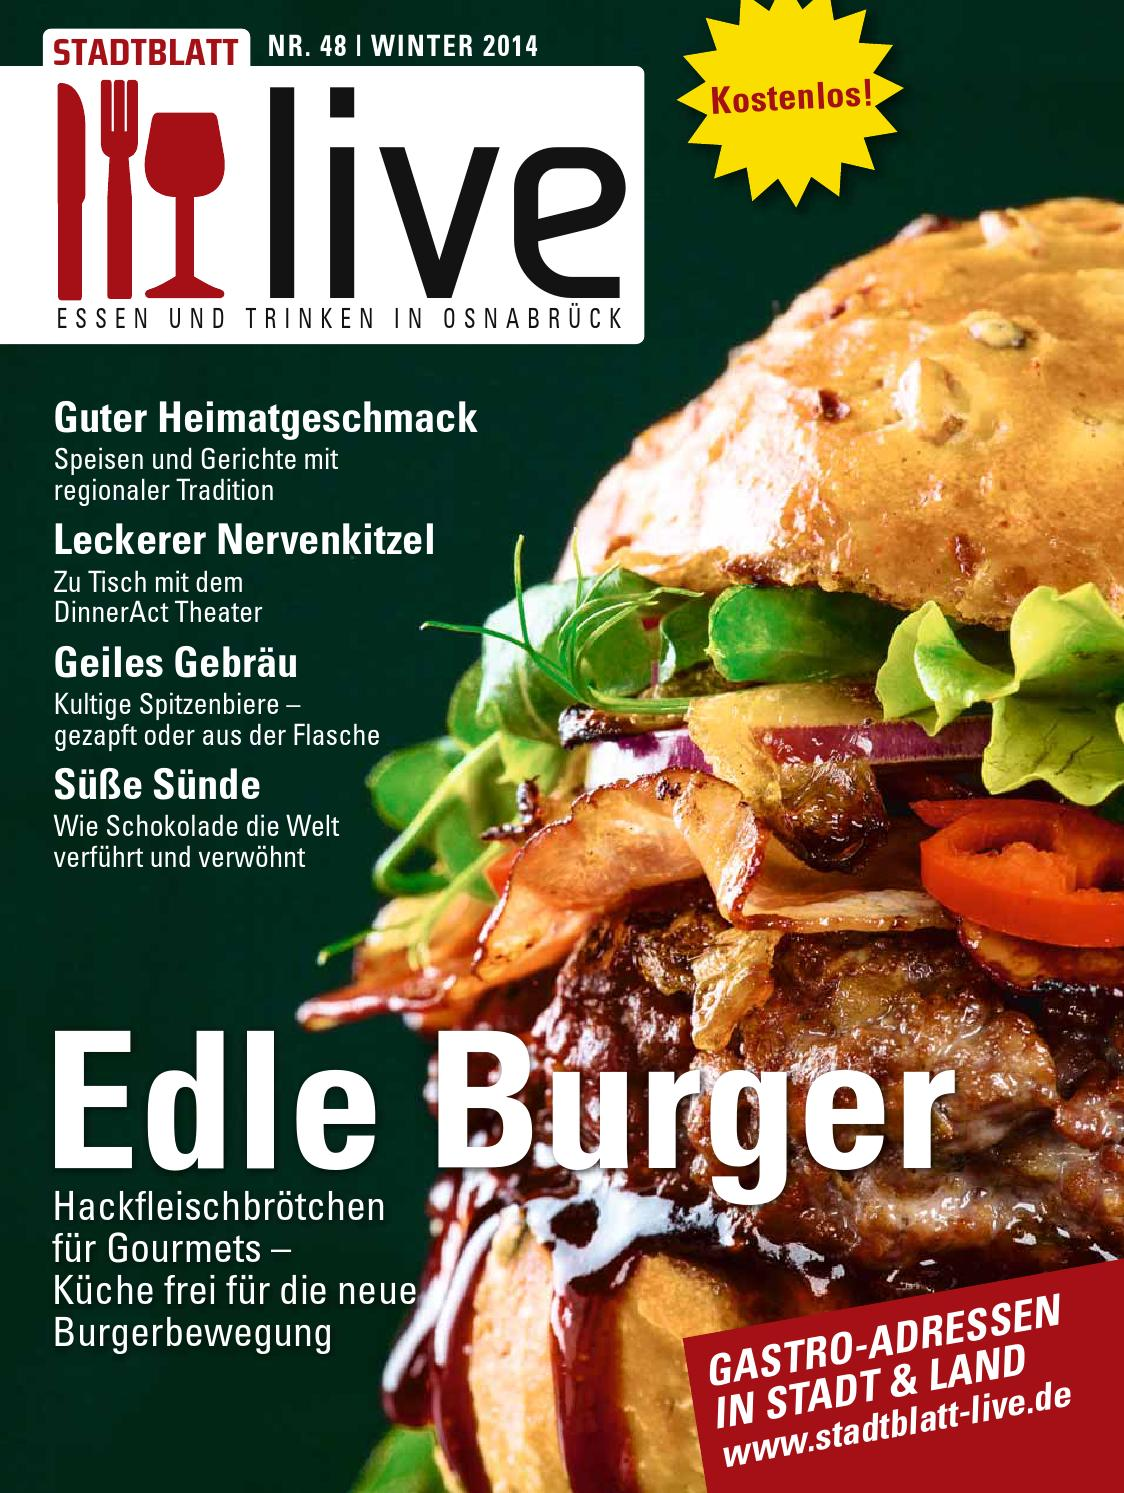 STADTBLATT live winter 2014 by bvw werbeagentur - issuu